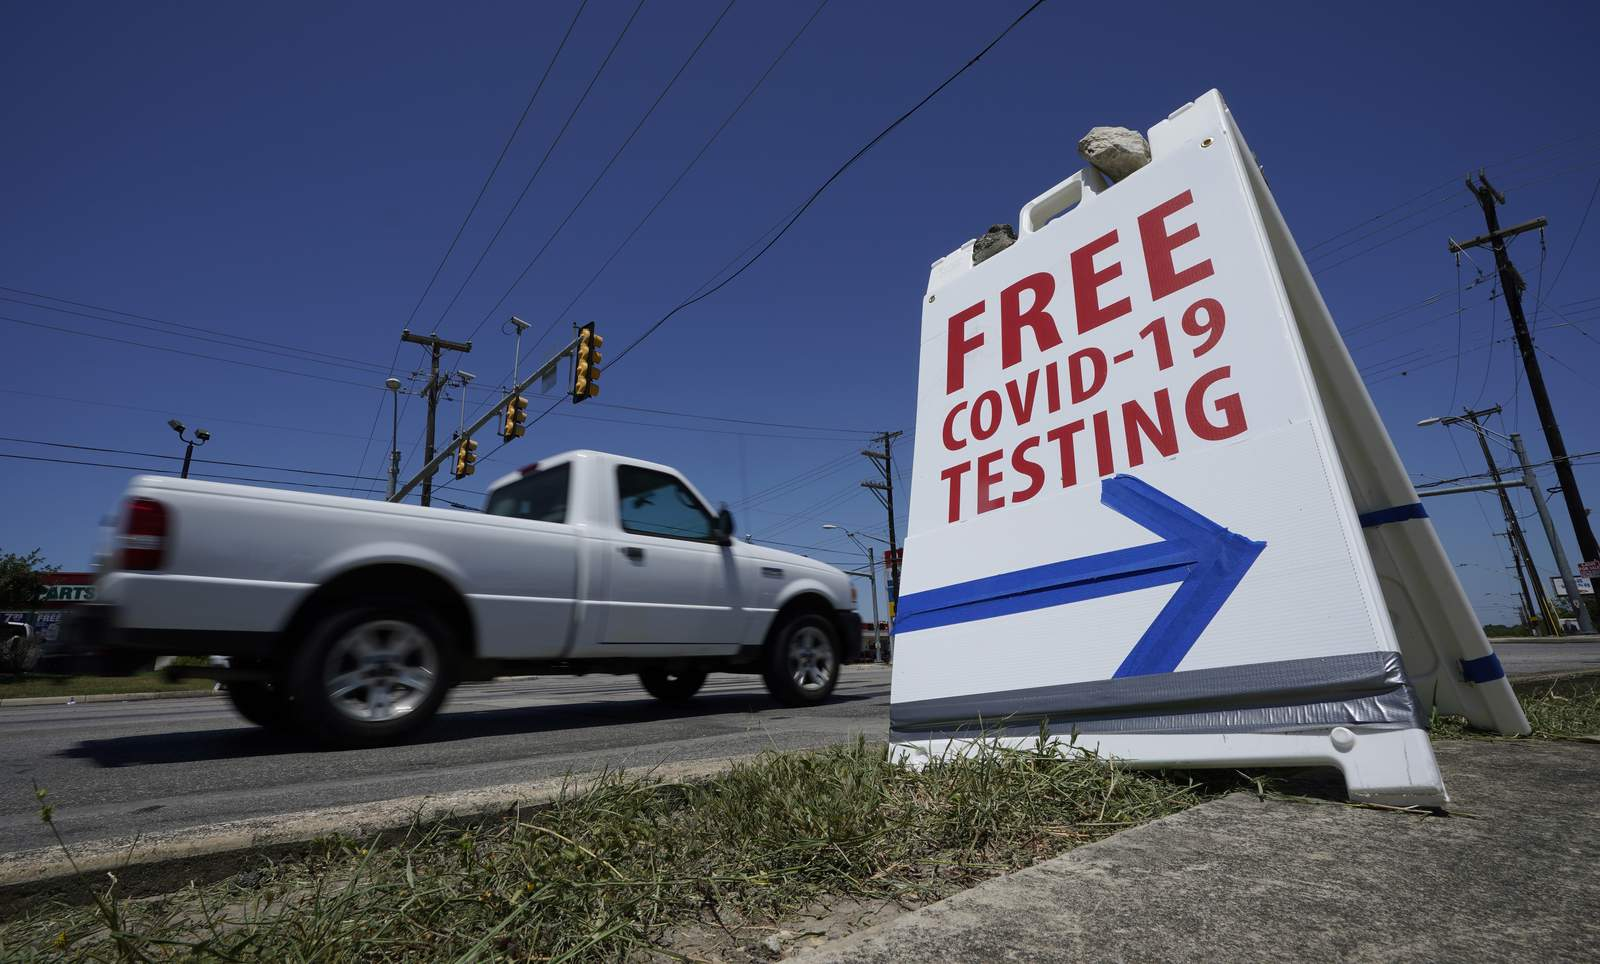 Asymptomatic Covid 19 Testing Sites In San Antonio Add Saturday Hours